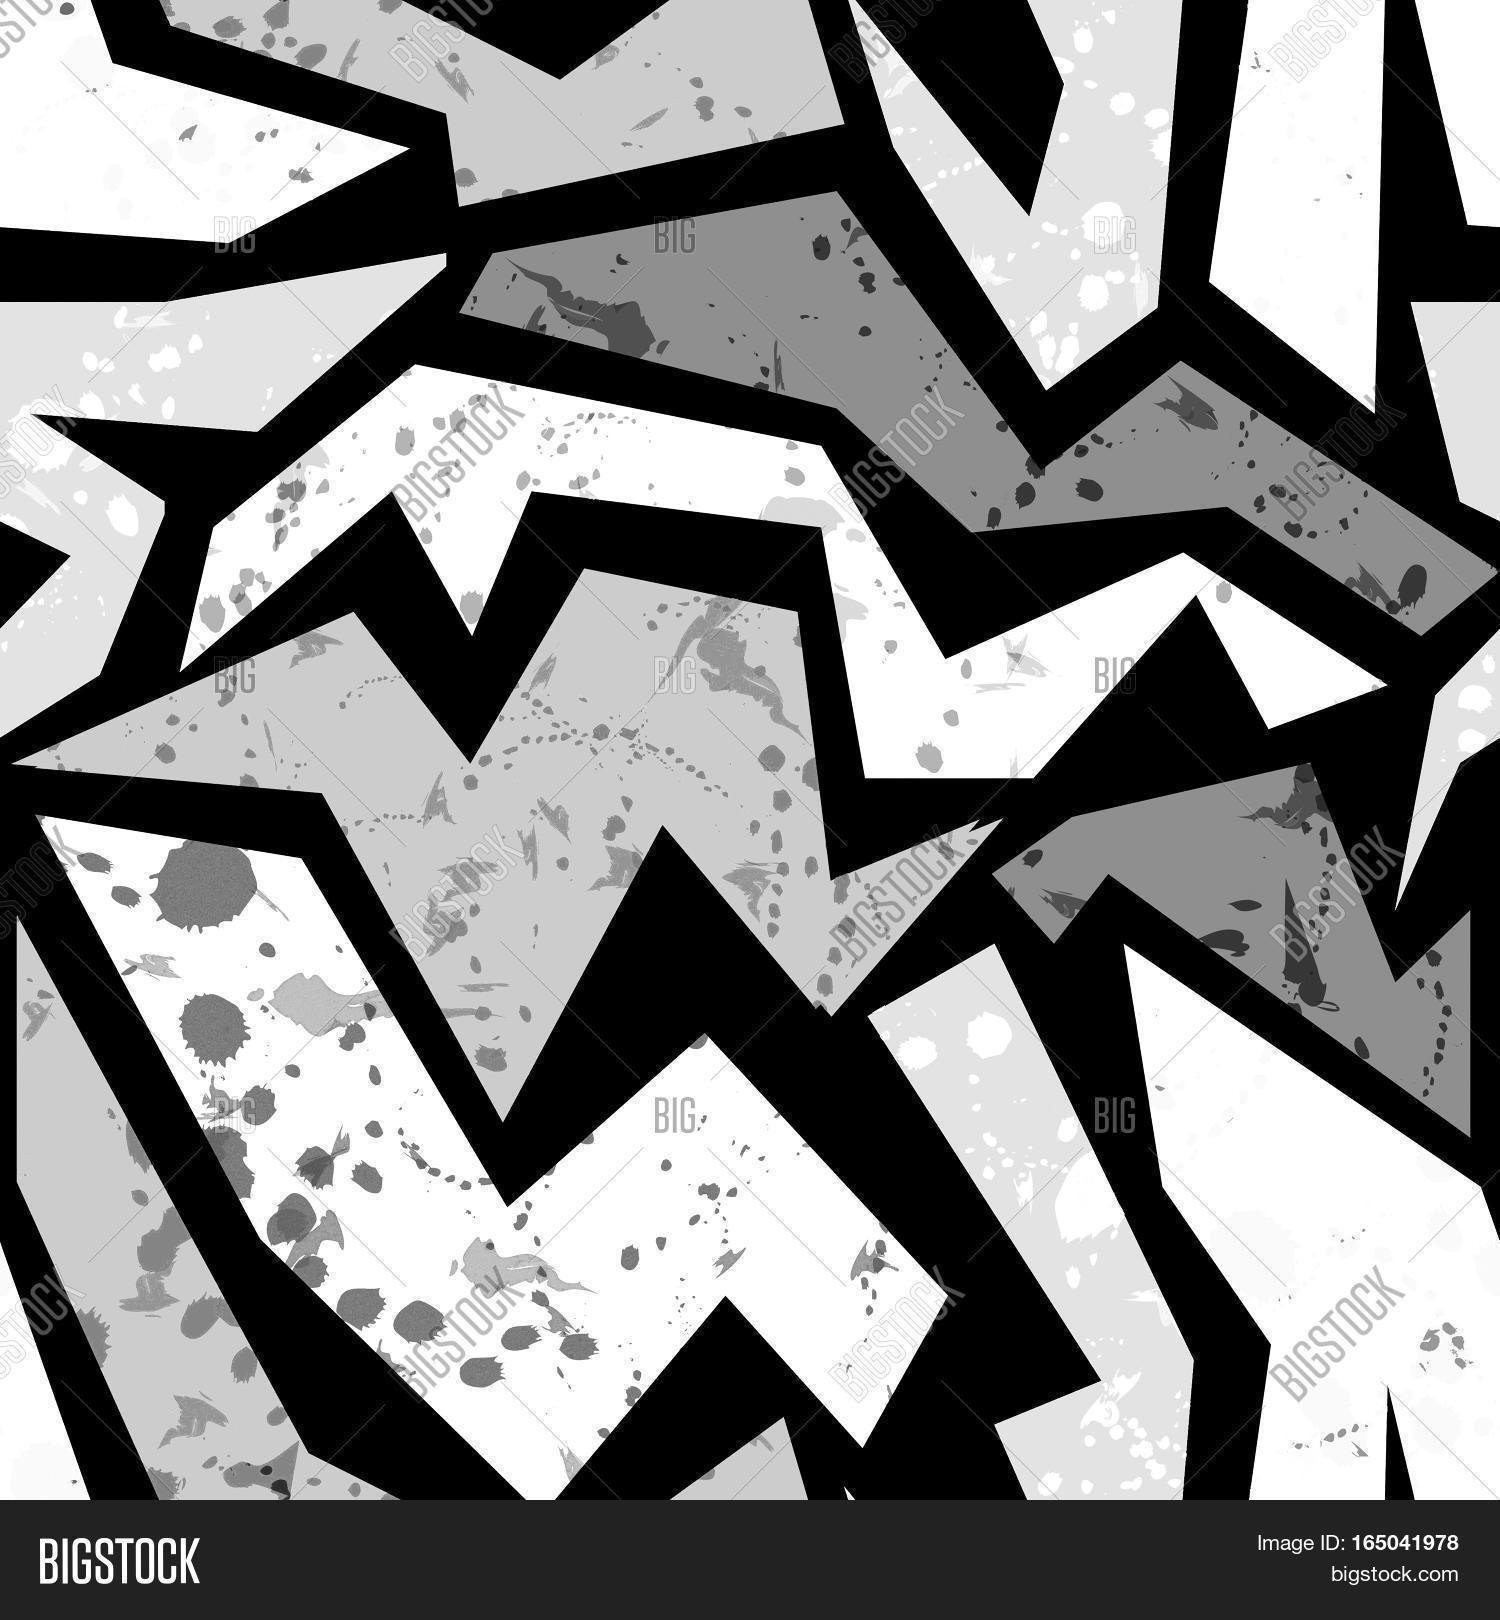 Seamless Grunge Graffiti Pattern Image & Photo | Bigstock